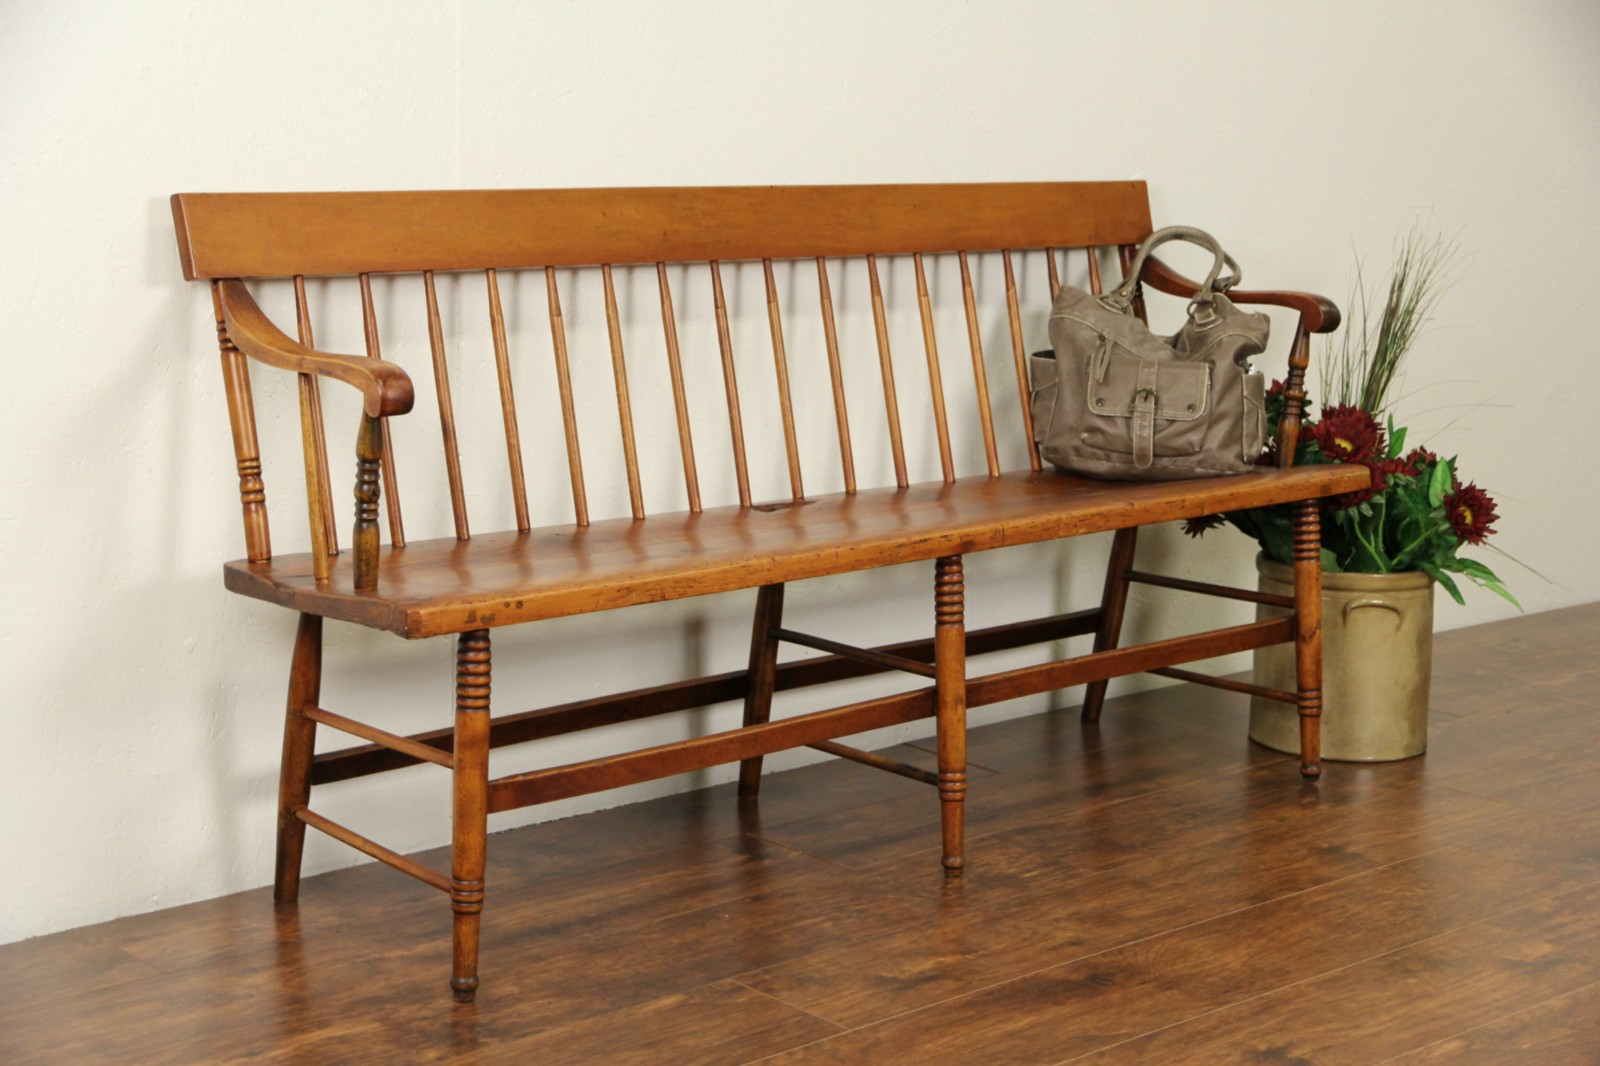 Sitzbank Industrial Sold - Country Pine 1860's Antique Hall Or Deacon Bench